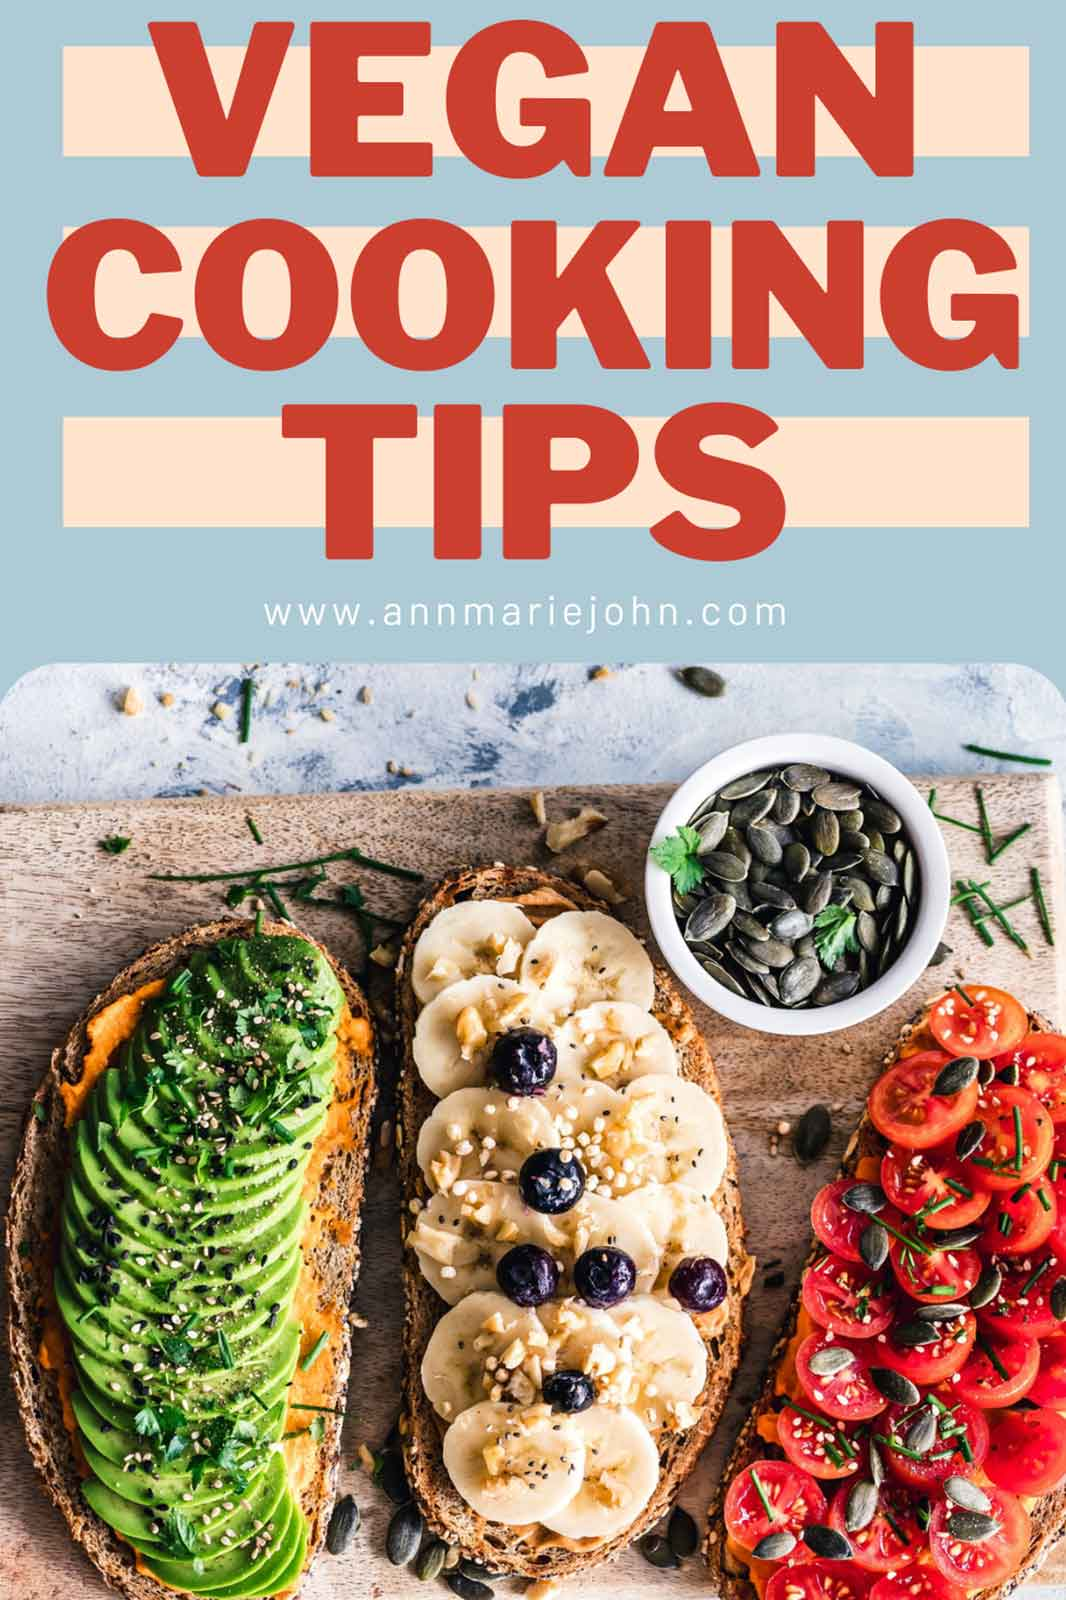 Vegan Cooking Tips and Tricks From the Experts